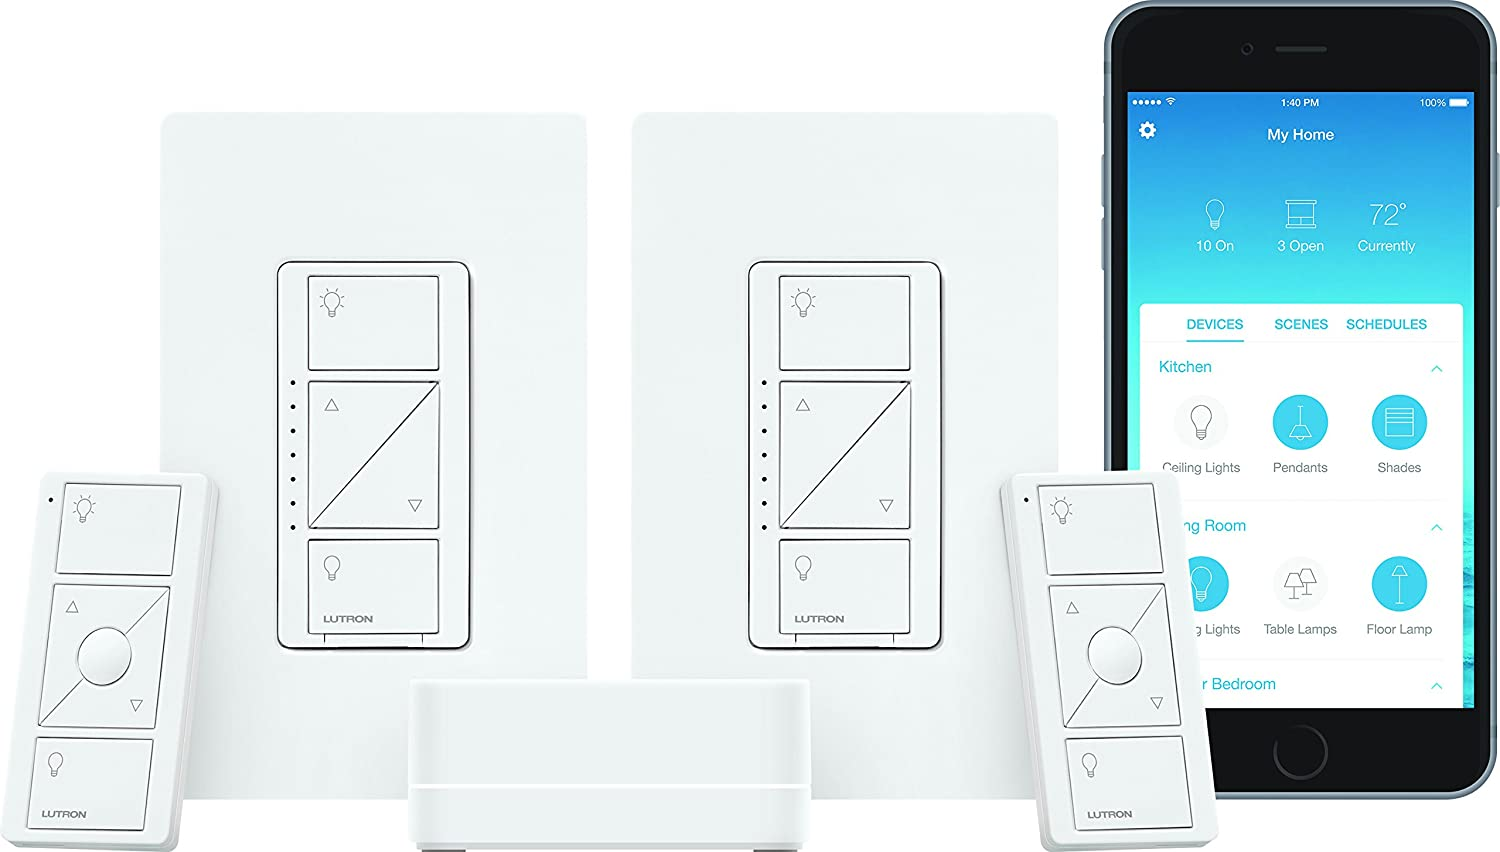 Lutron Caseta Wireless Smart Lighting 2 Dimmer Switch Starter Kit P Wiring A 3 Way With Power At Fixture Bdg Pkg2w Works Alexa Apple Homekit And The Google Assistant